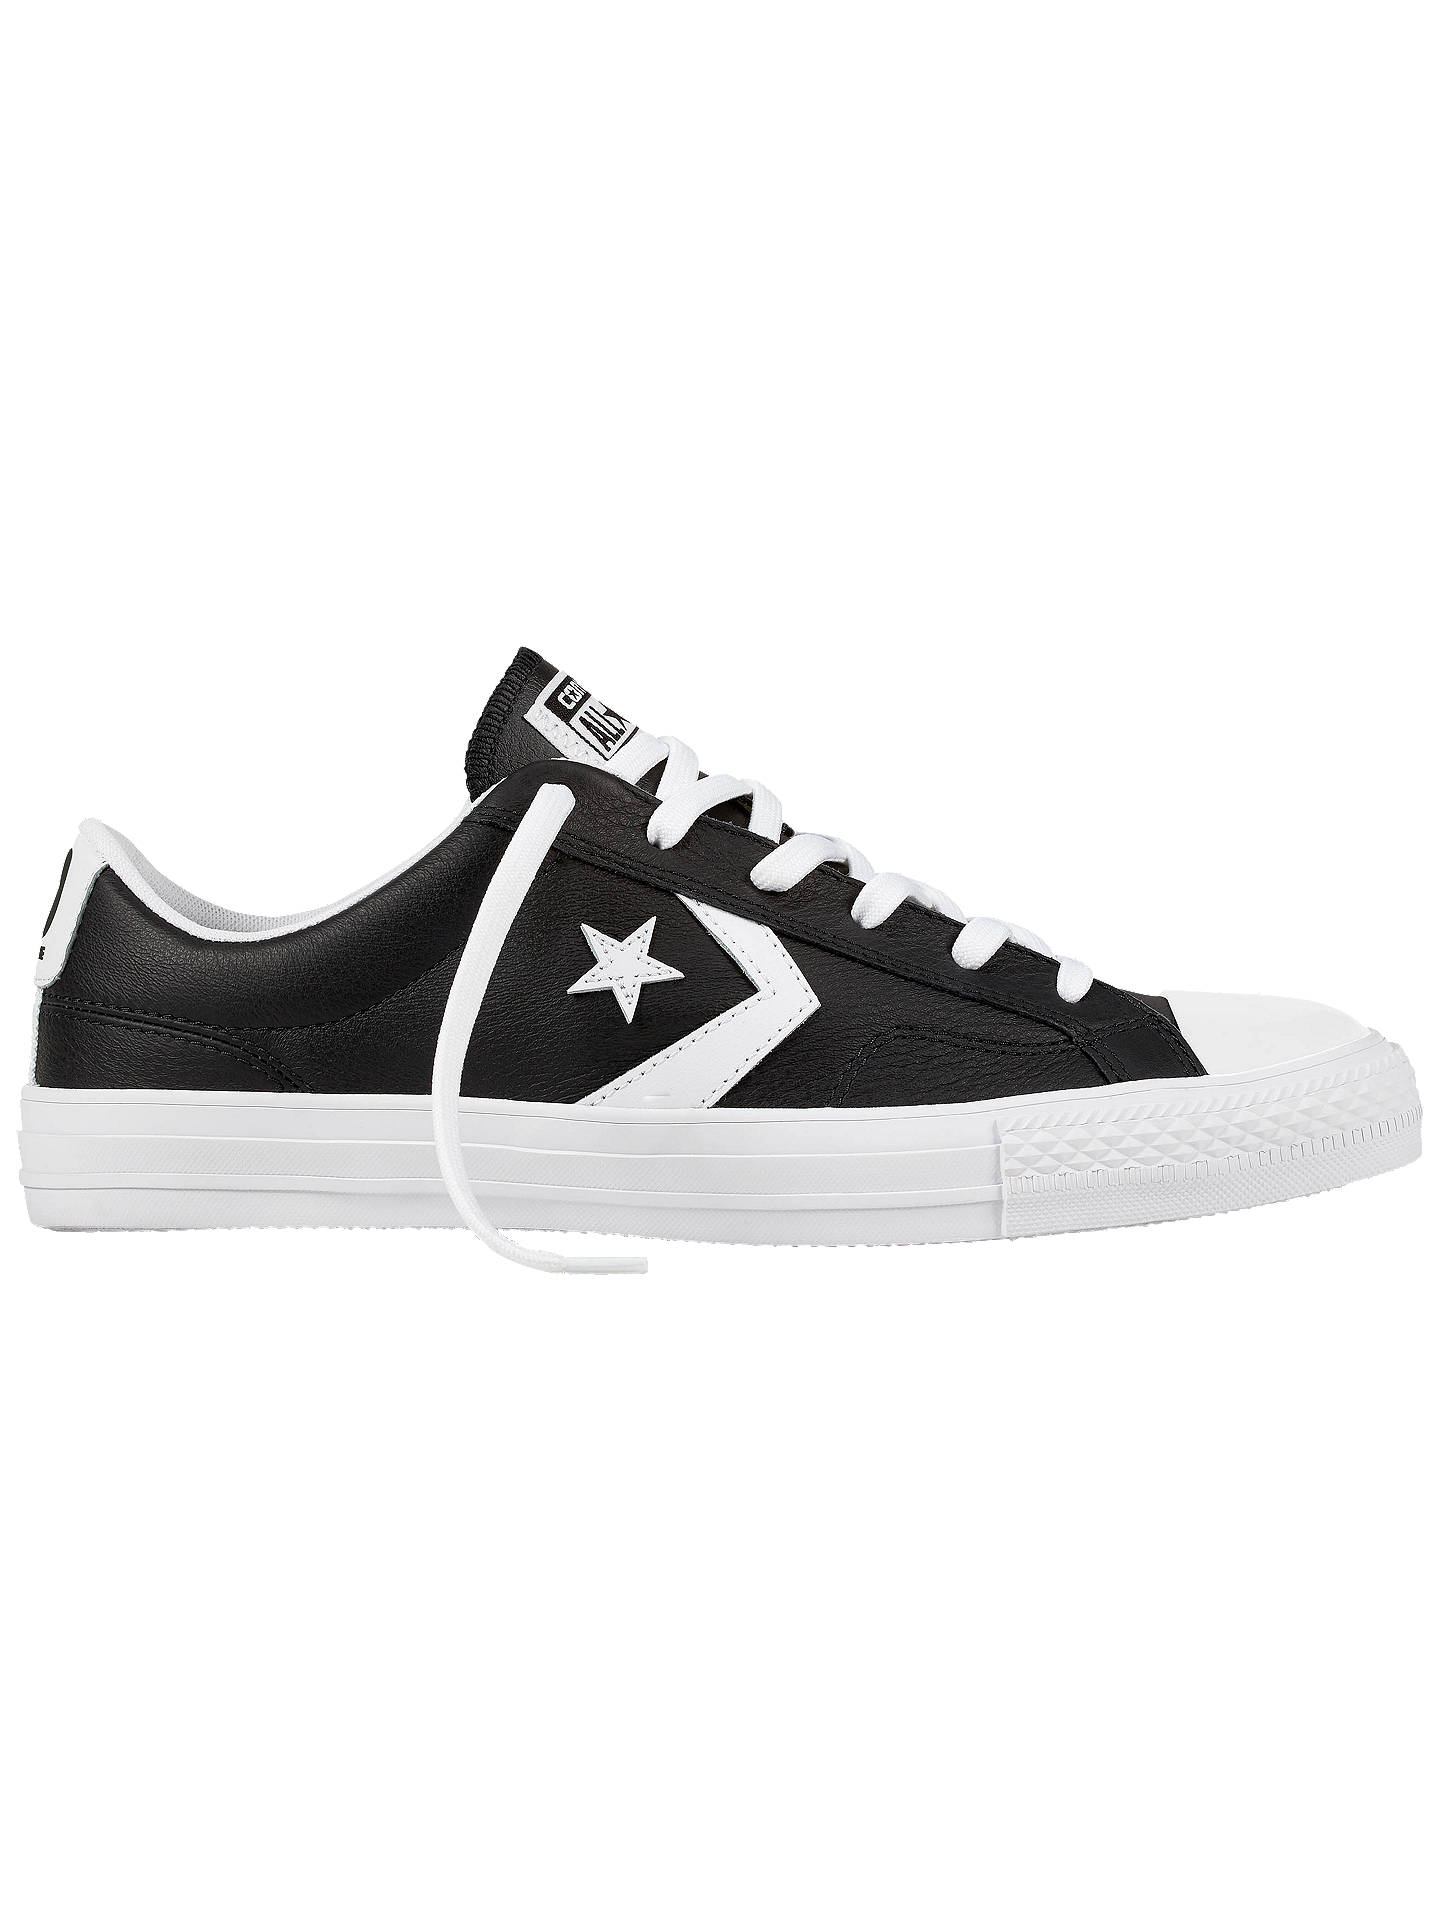 BuyConverse Star Player Leather Trainers d7aca48fc